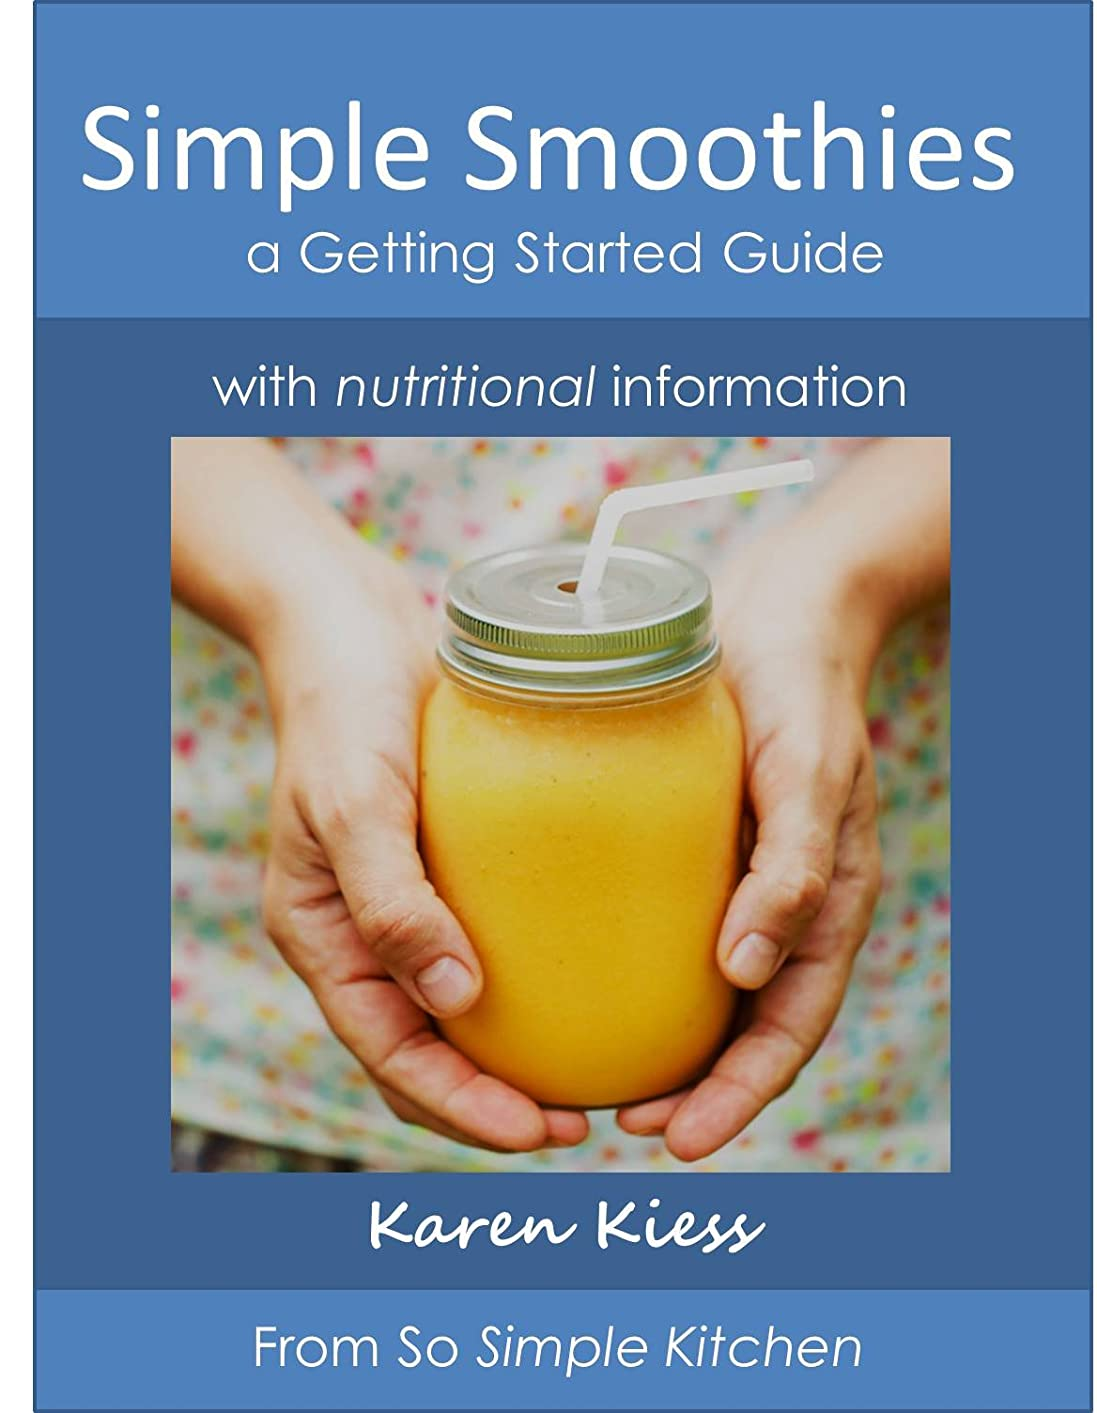 Simple Smoothies: a getting started guide (So Simple Kitchen Book 1) (English Edition)